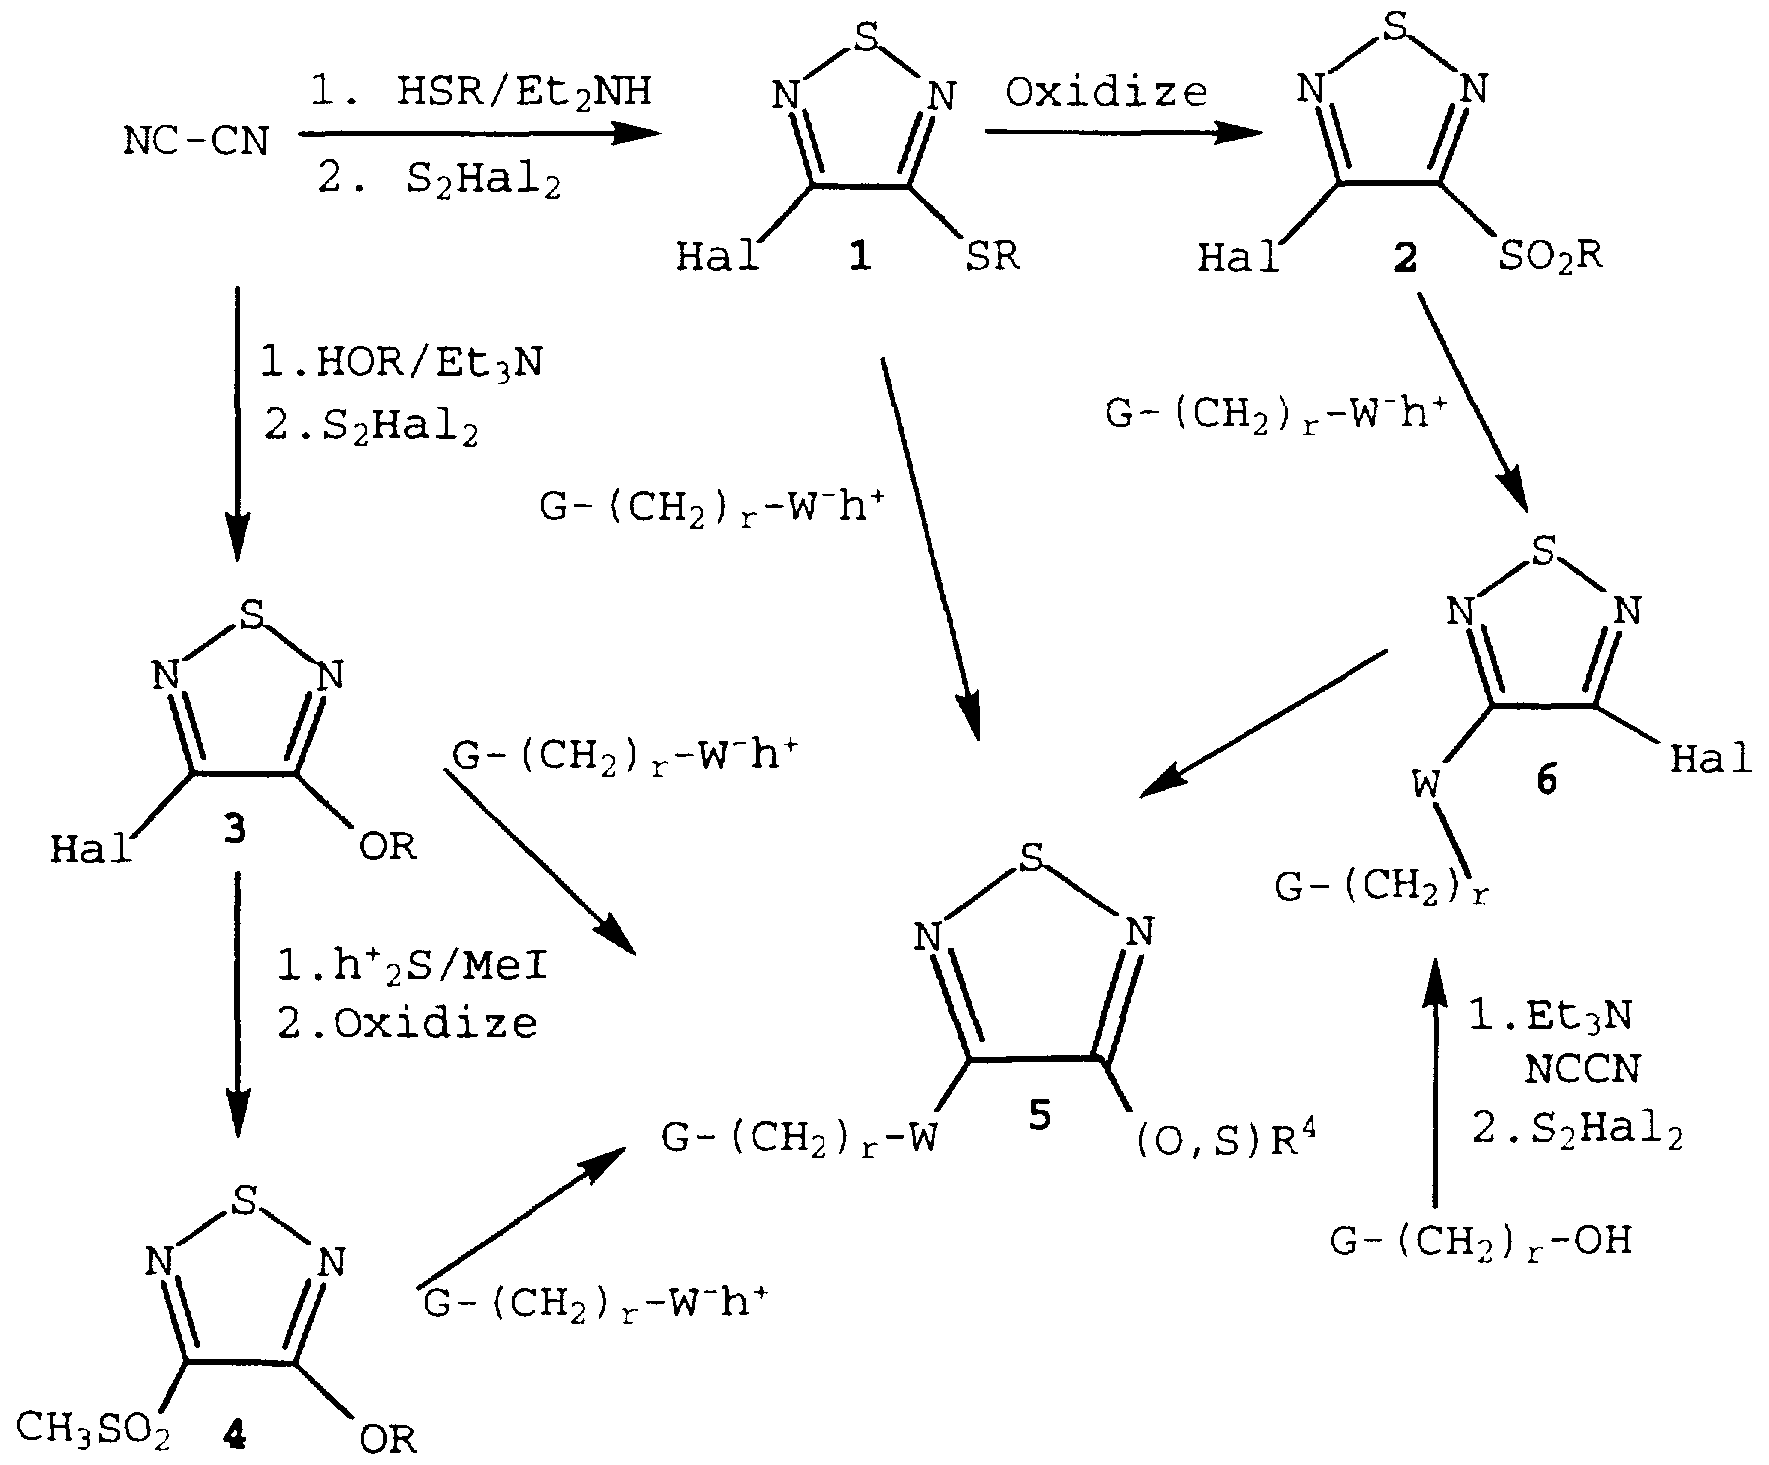 molecular systhesis Chemical synthesis is the preparation of a compound, usually an organic compound, from easily available or inexpensive commercial chemicals compounds are prepared or synthesized by performing various chemical reactions using an inexpensive starting material and changing its molecular structure, by.